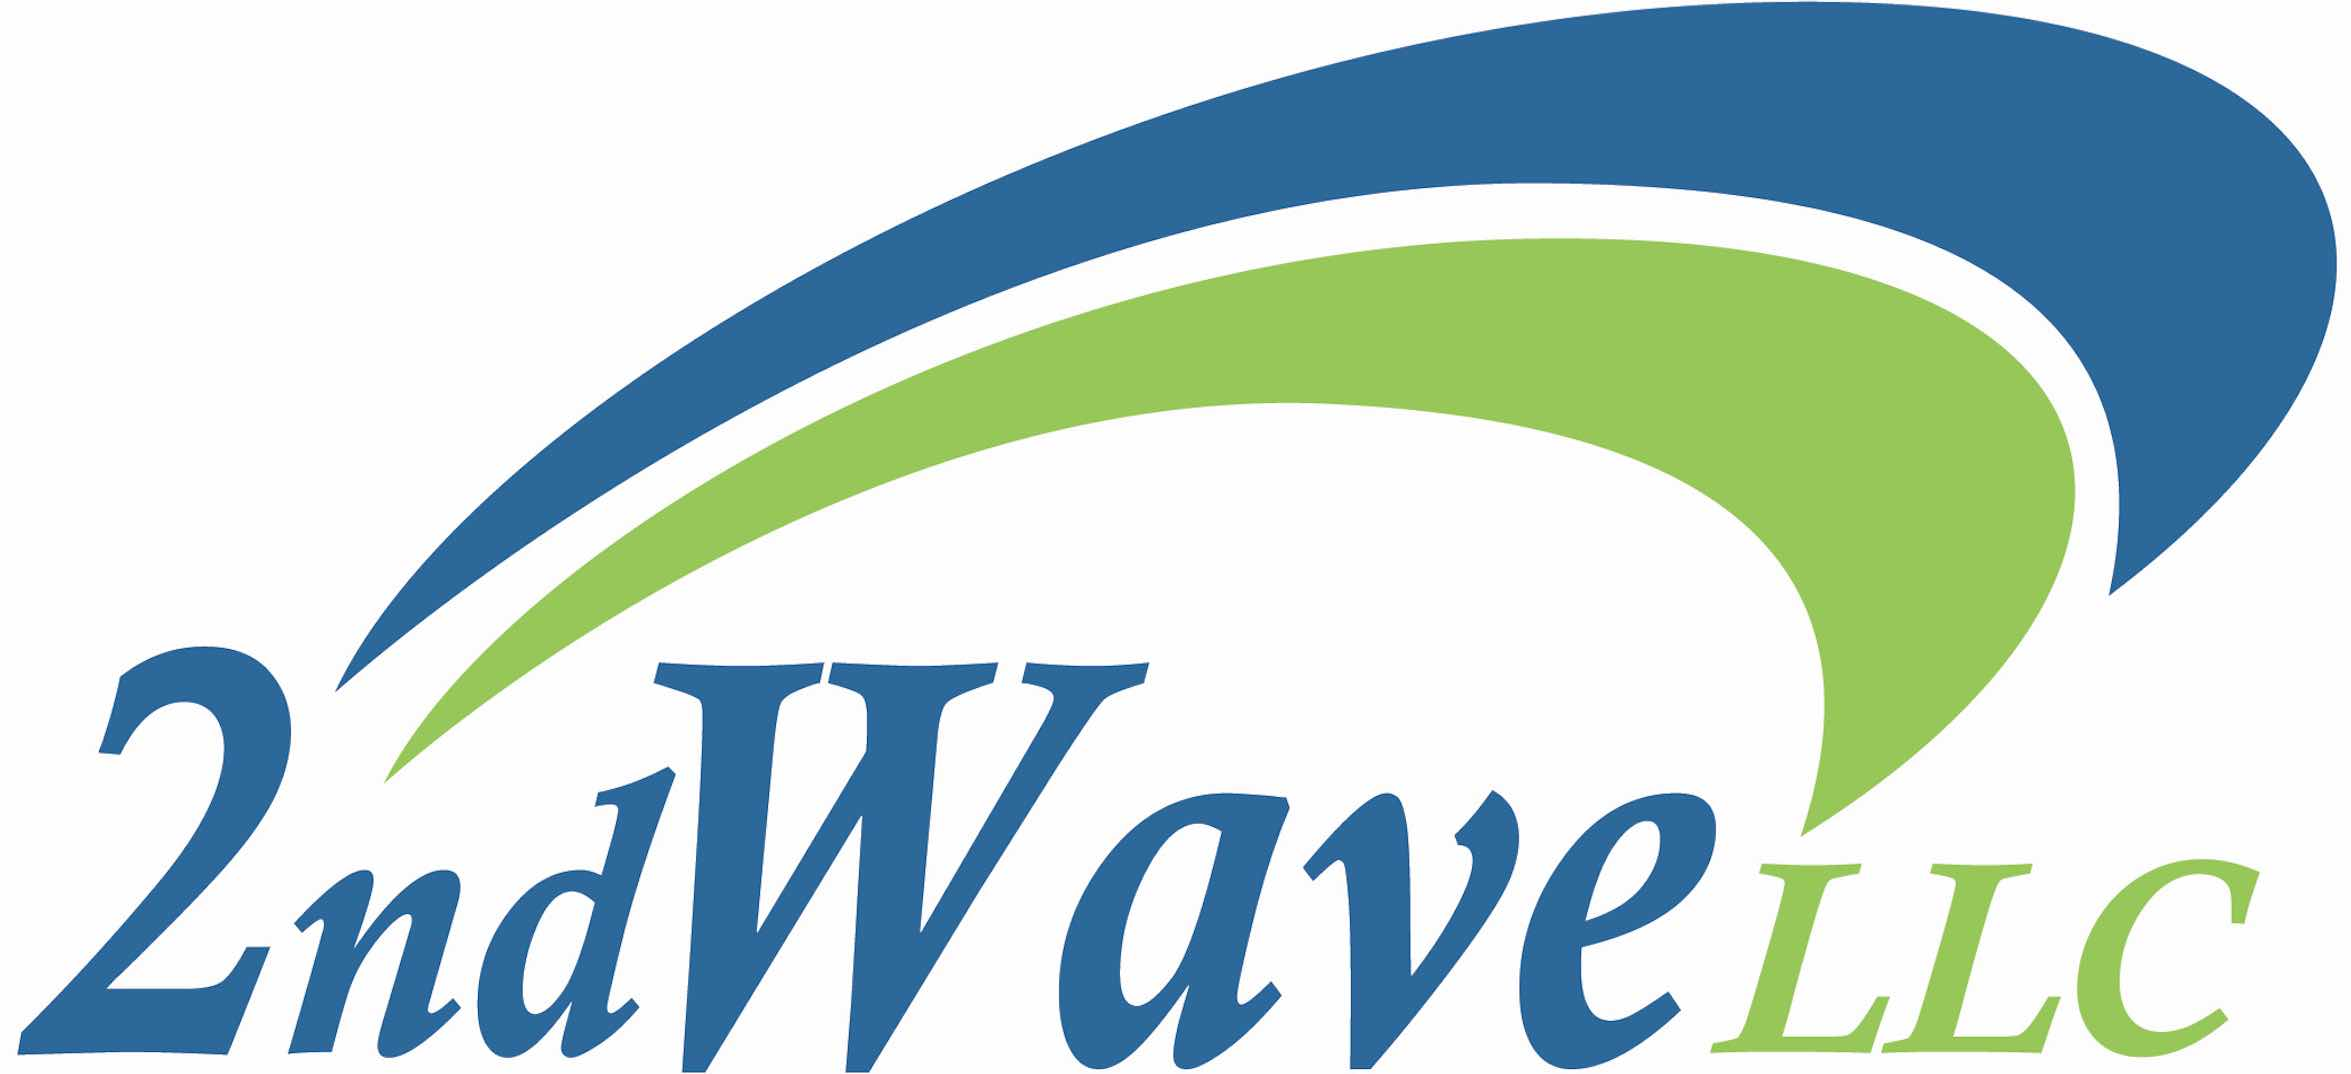 The 2016 Fastest Growing Firms: 2ndWave